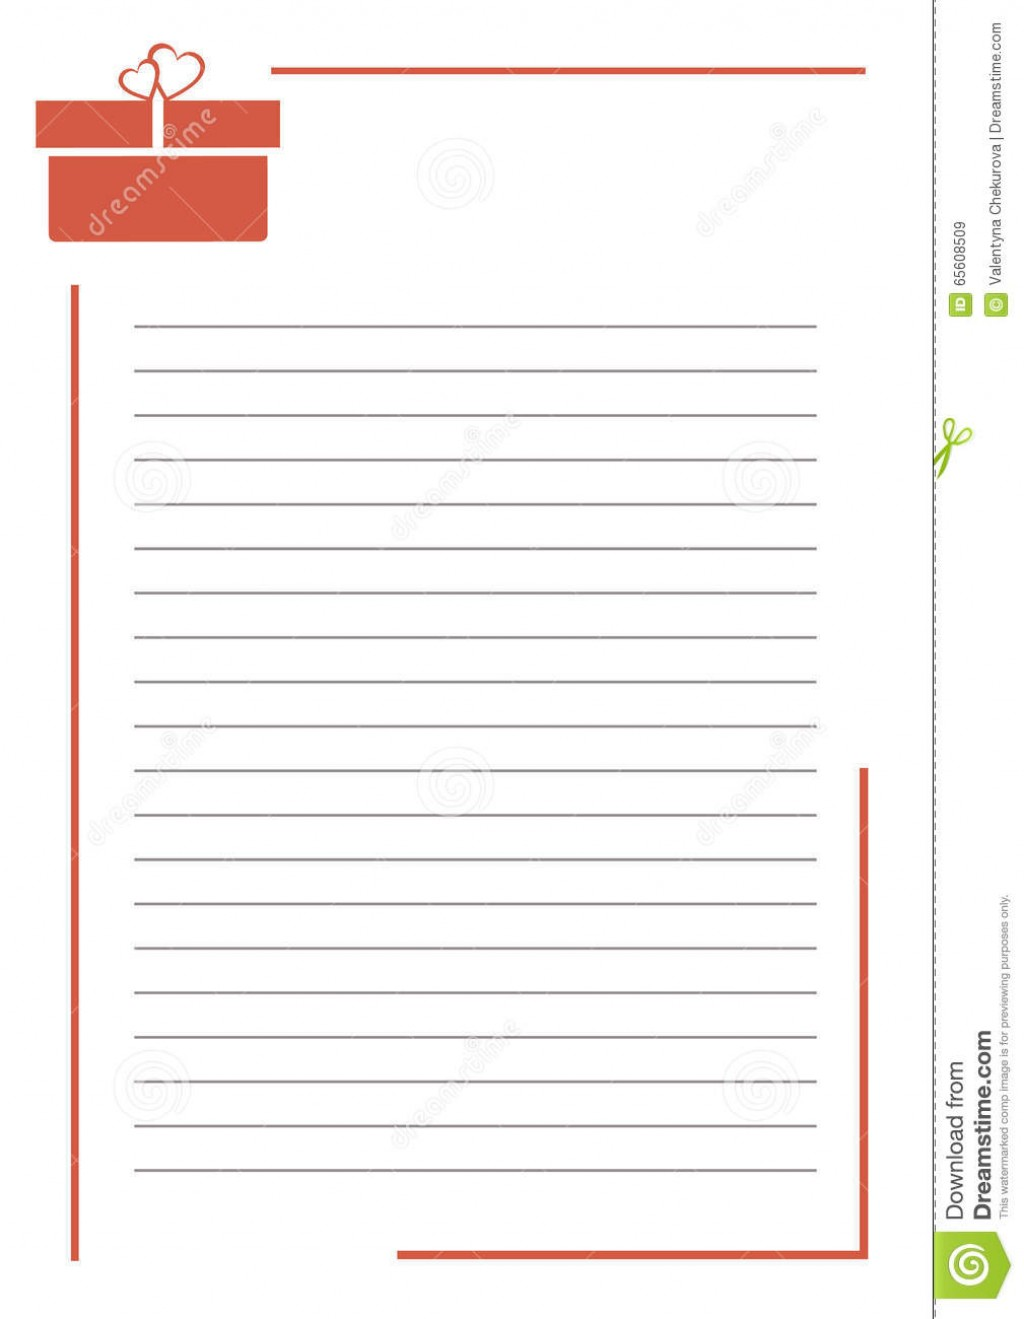 011 Note Card Maker For Research Paper Vector Blank Letter Greeting White Form Red Gift Box Lines Border Format Size Marvelous Large